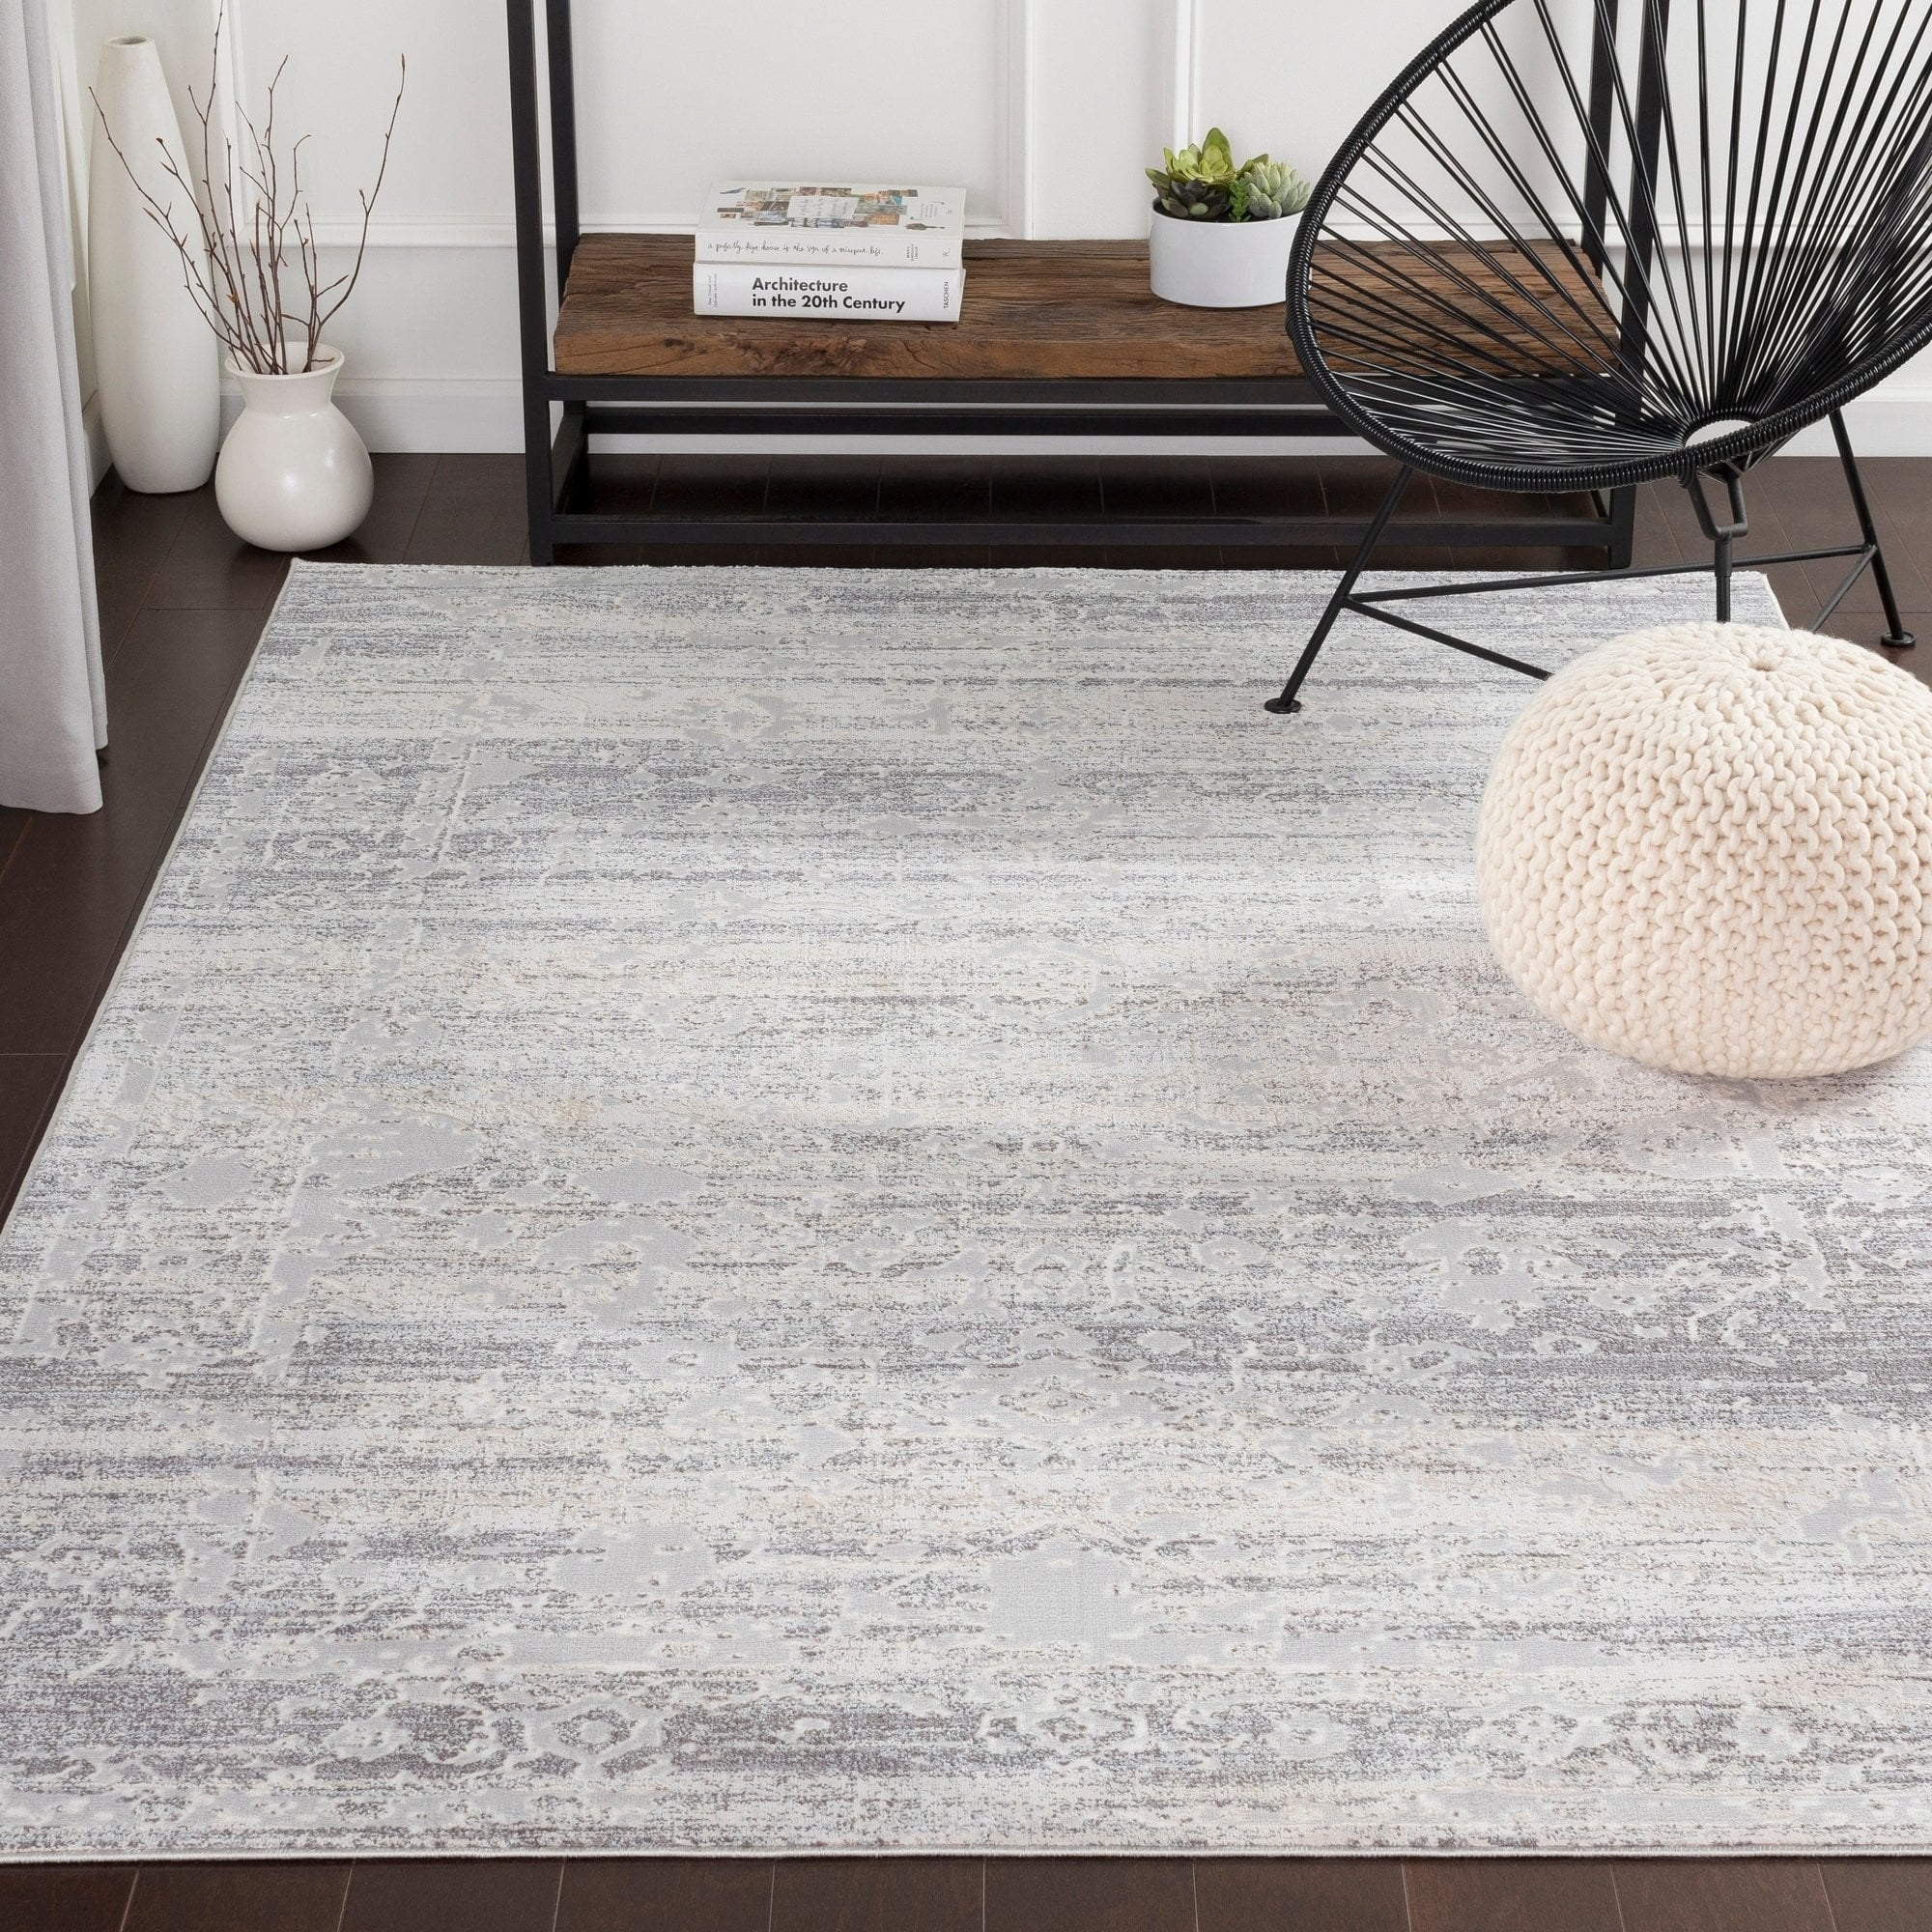 Rachana Distressed Traditional Silver Grey Area Rug 7 10 X 10 3 7 10 X 10 3 Silver Gray Rugs Area Rugs White Area Rug